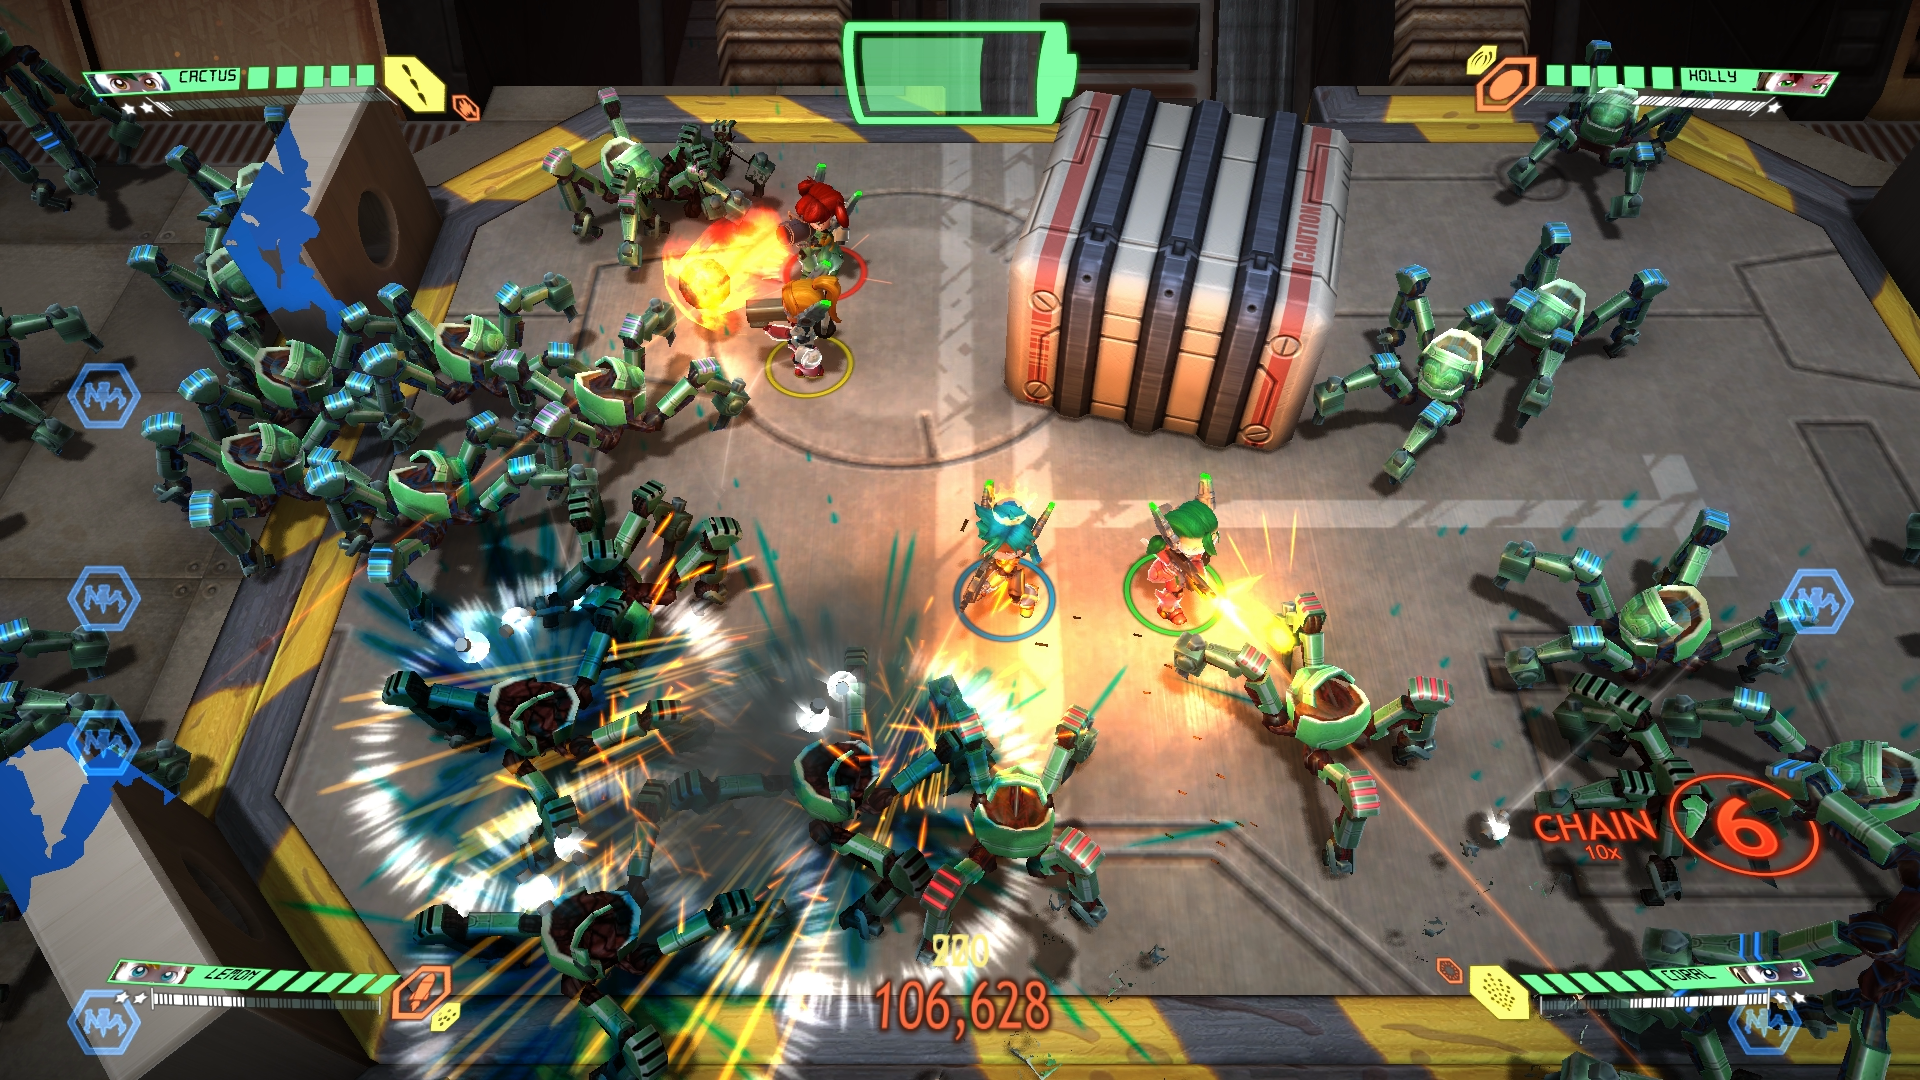 Assault Android Cactus - Indie MEGABOOTH